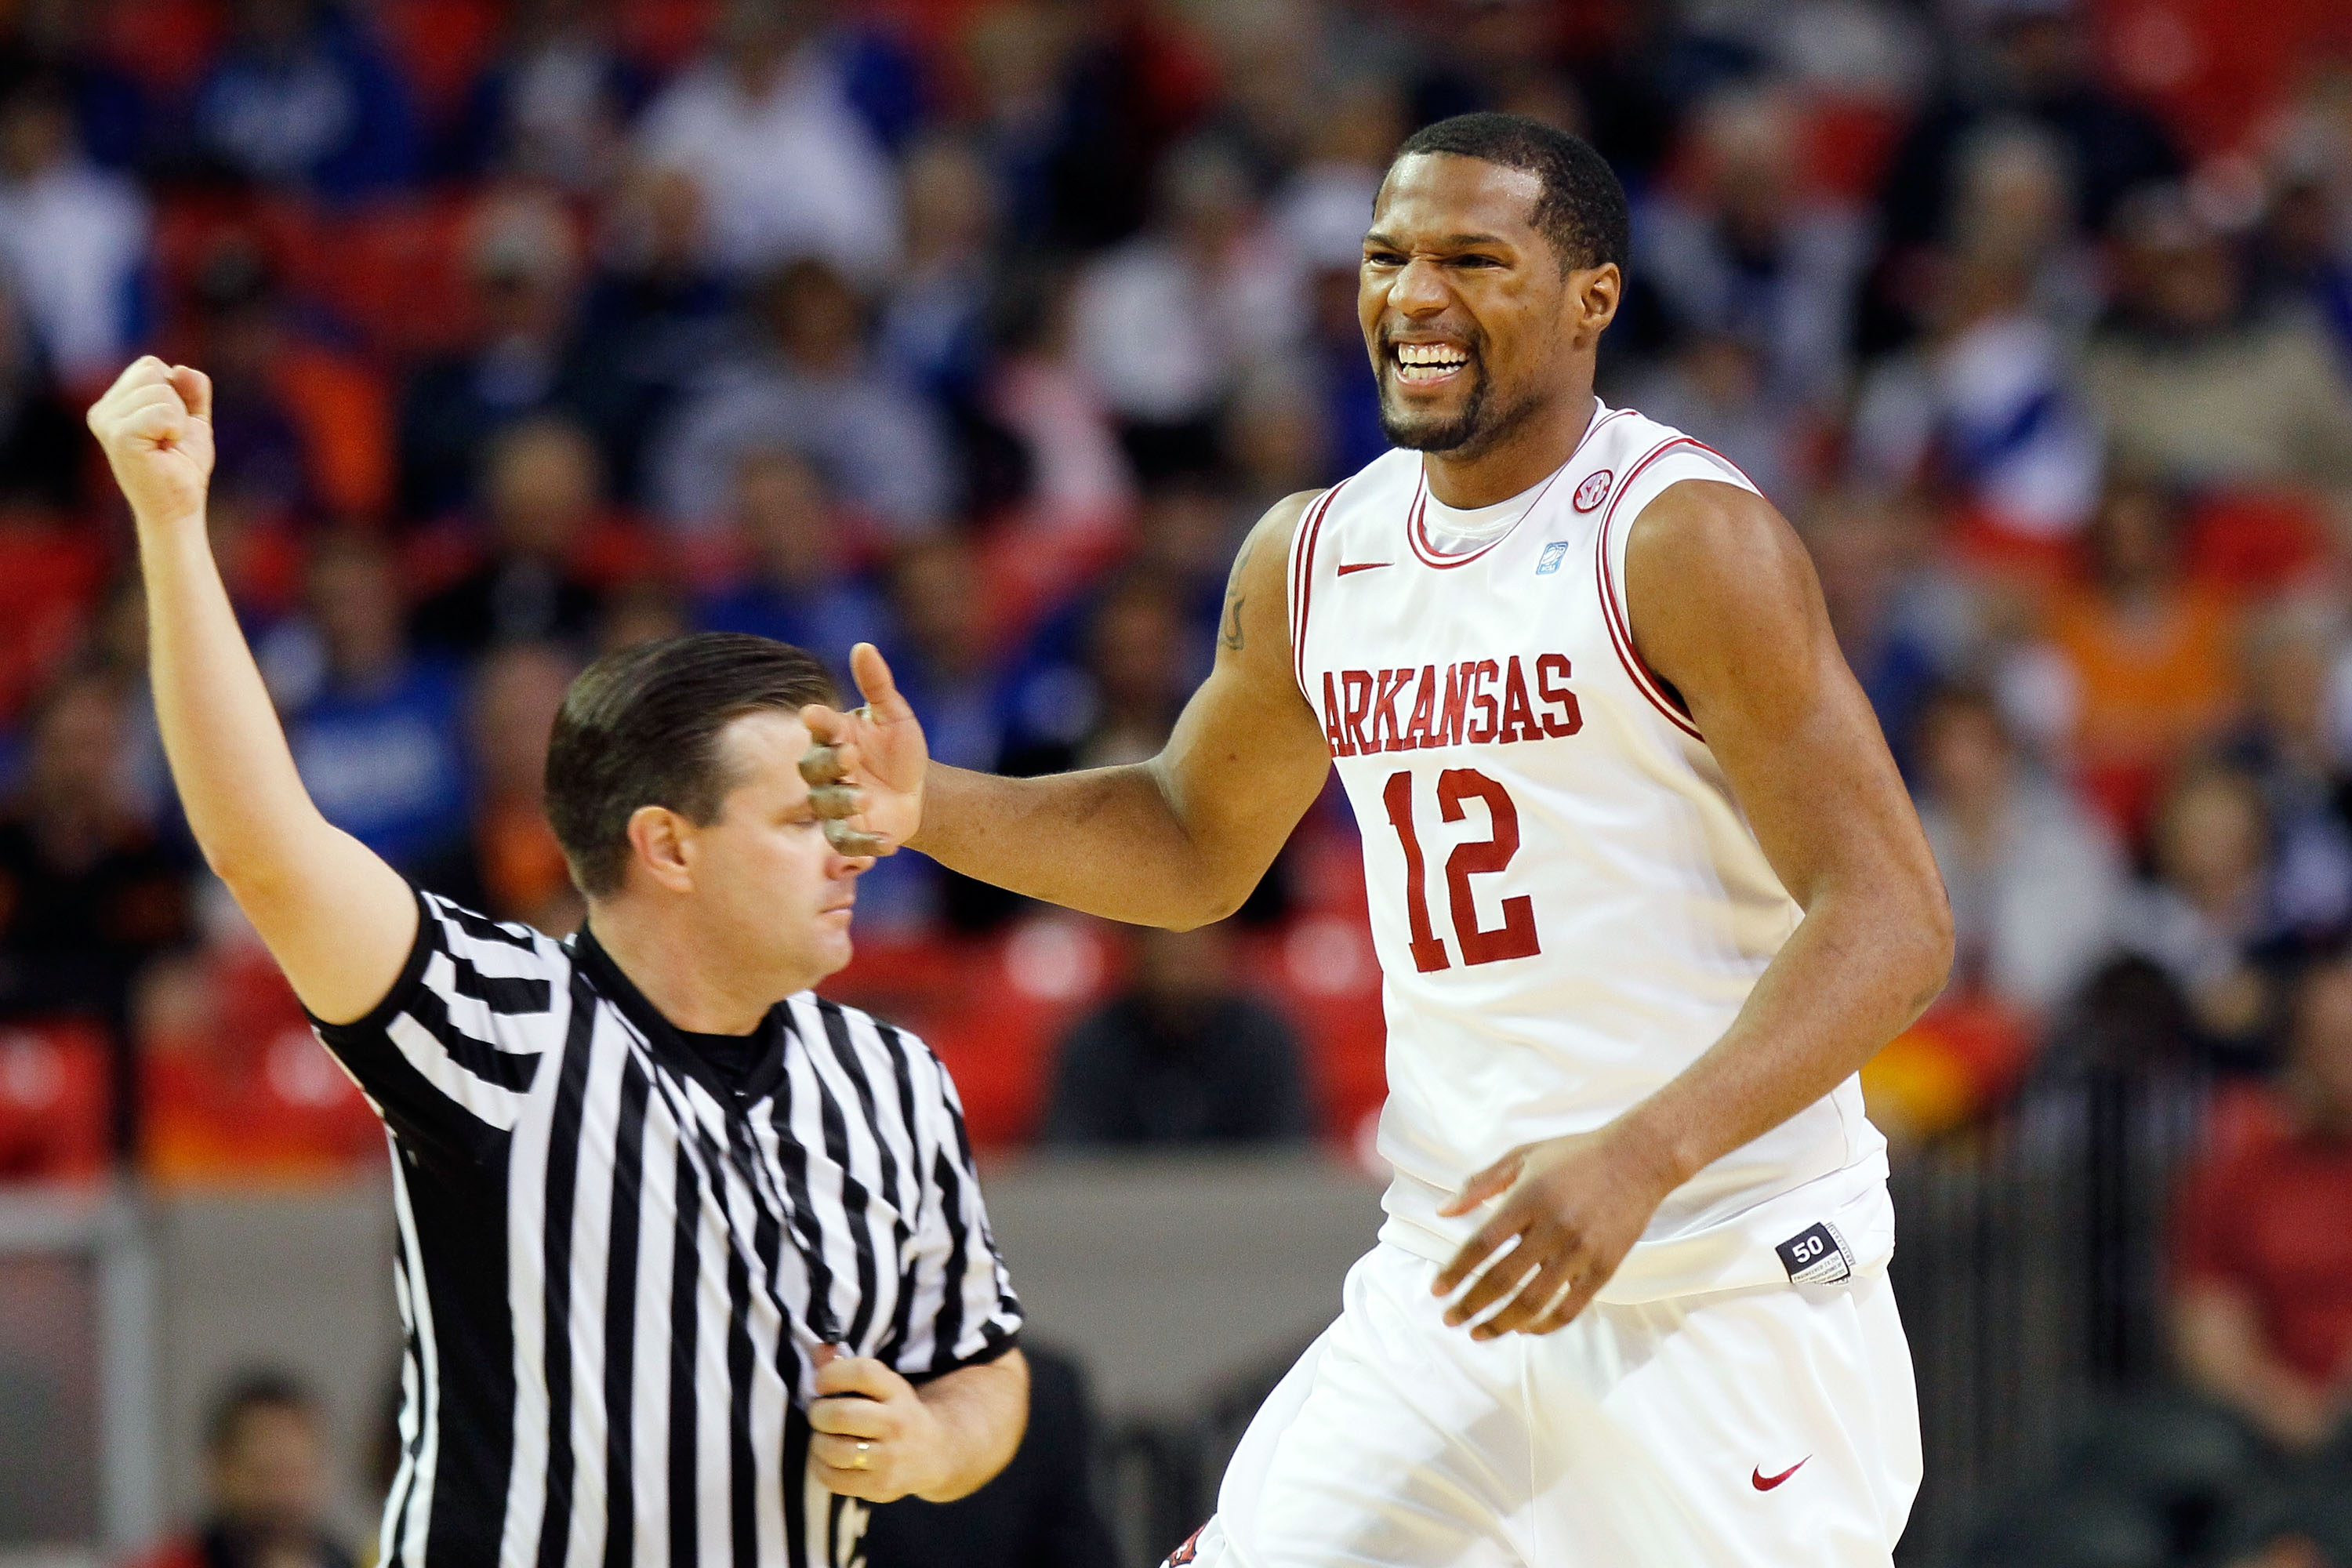 ATLANTA, GA - MARCH 10:  Marcus Britt #12 of the Arkansas Razorbacks reacts to a call during their game against the Tennessee Volunteers in the first round of the SEC Men's Basketball Tournament at the Georgia Dome on March 10, 2011 in Atlanta, Georgia.